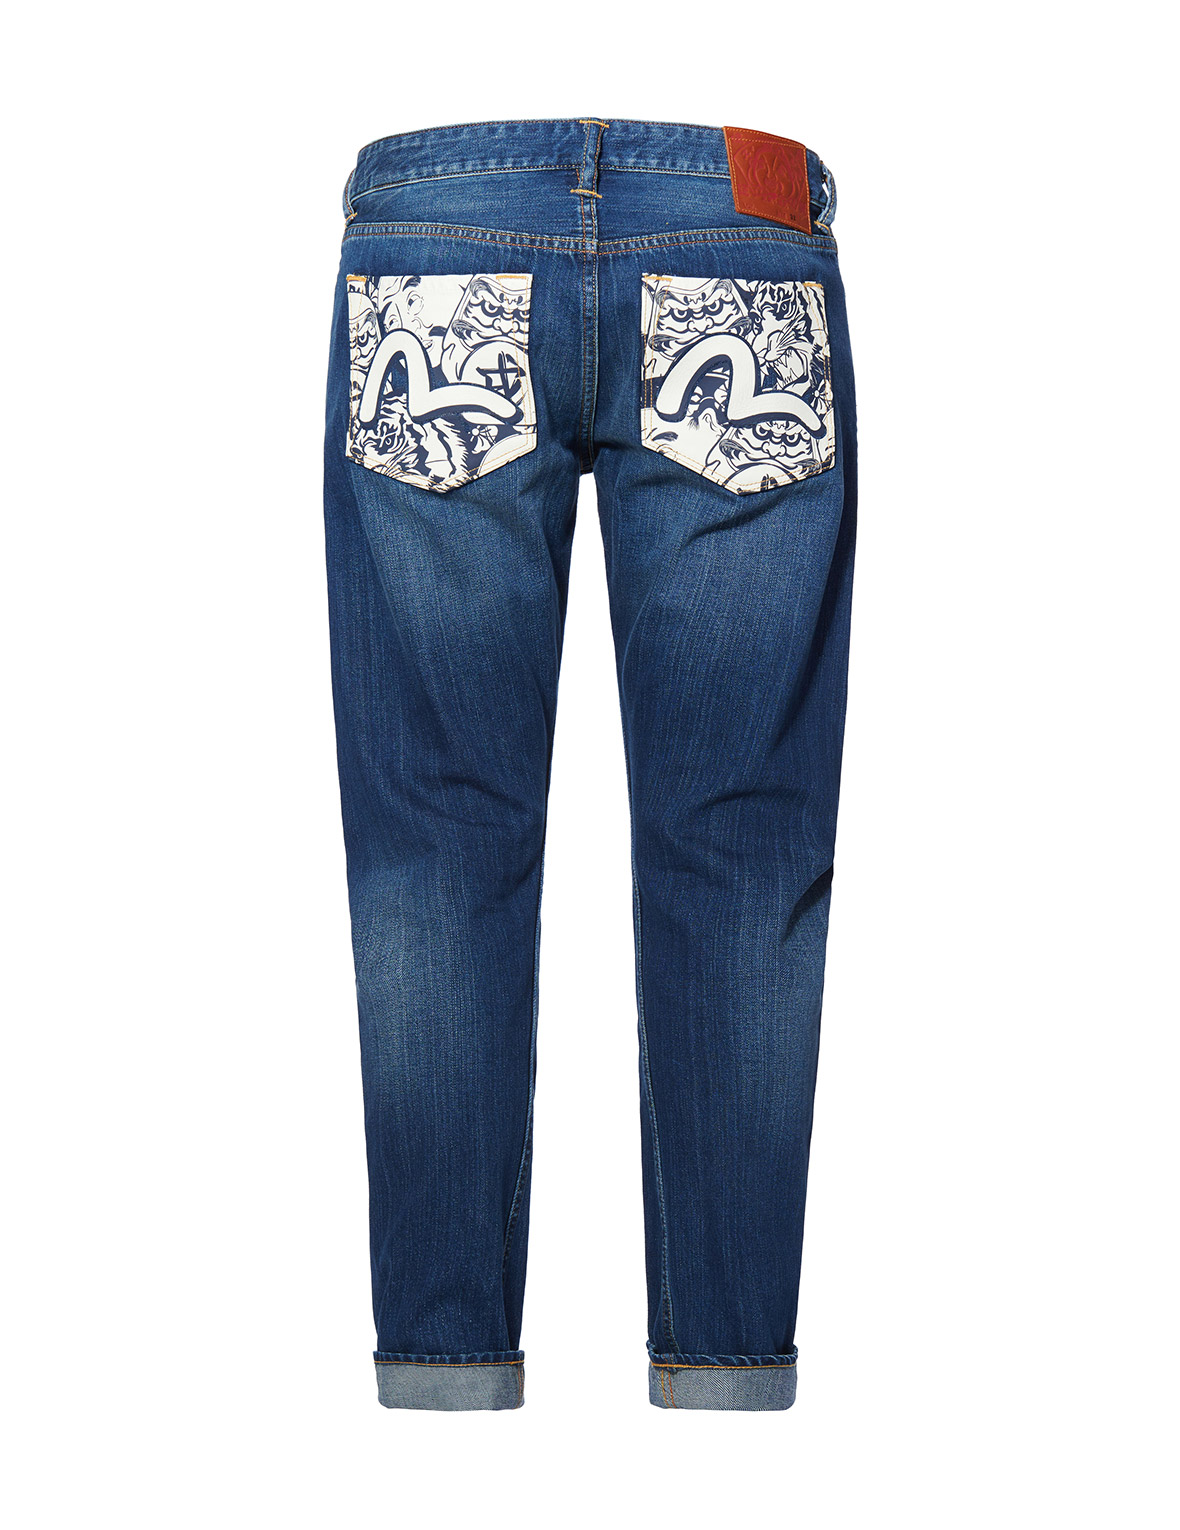 Monotone Allover Daruma, Ebisu and Tiger-printed Pockets 3D Fit Jeans